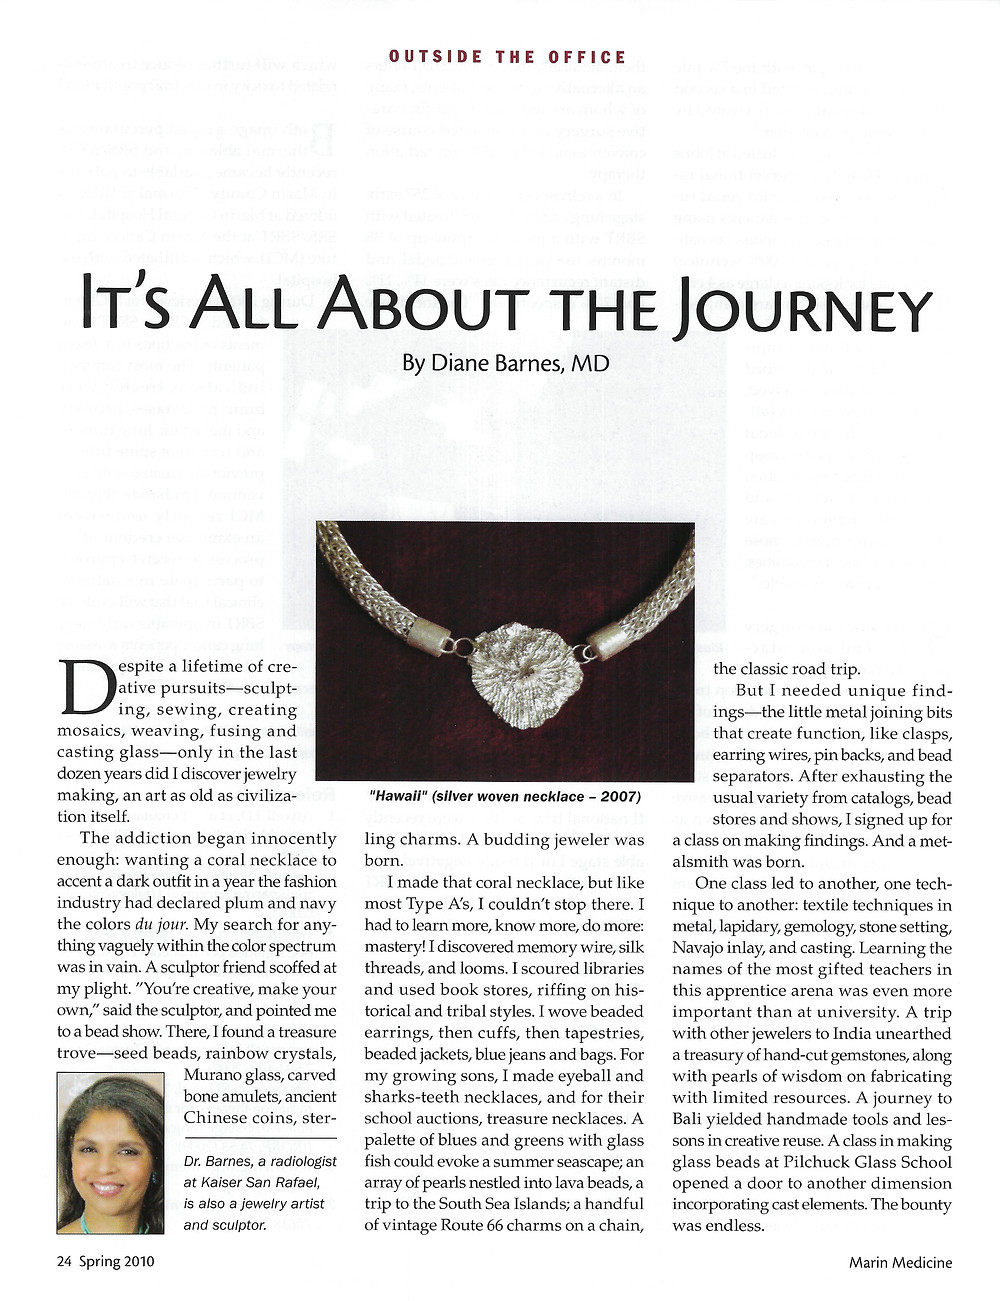 Article about Jewelry Making with Necklace Image